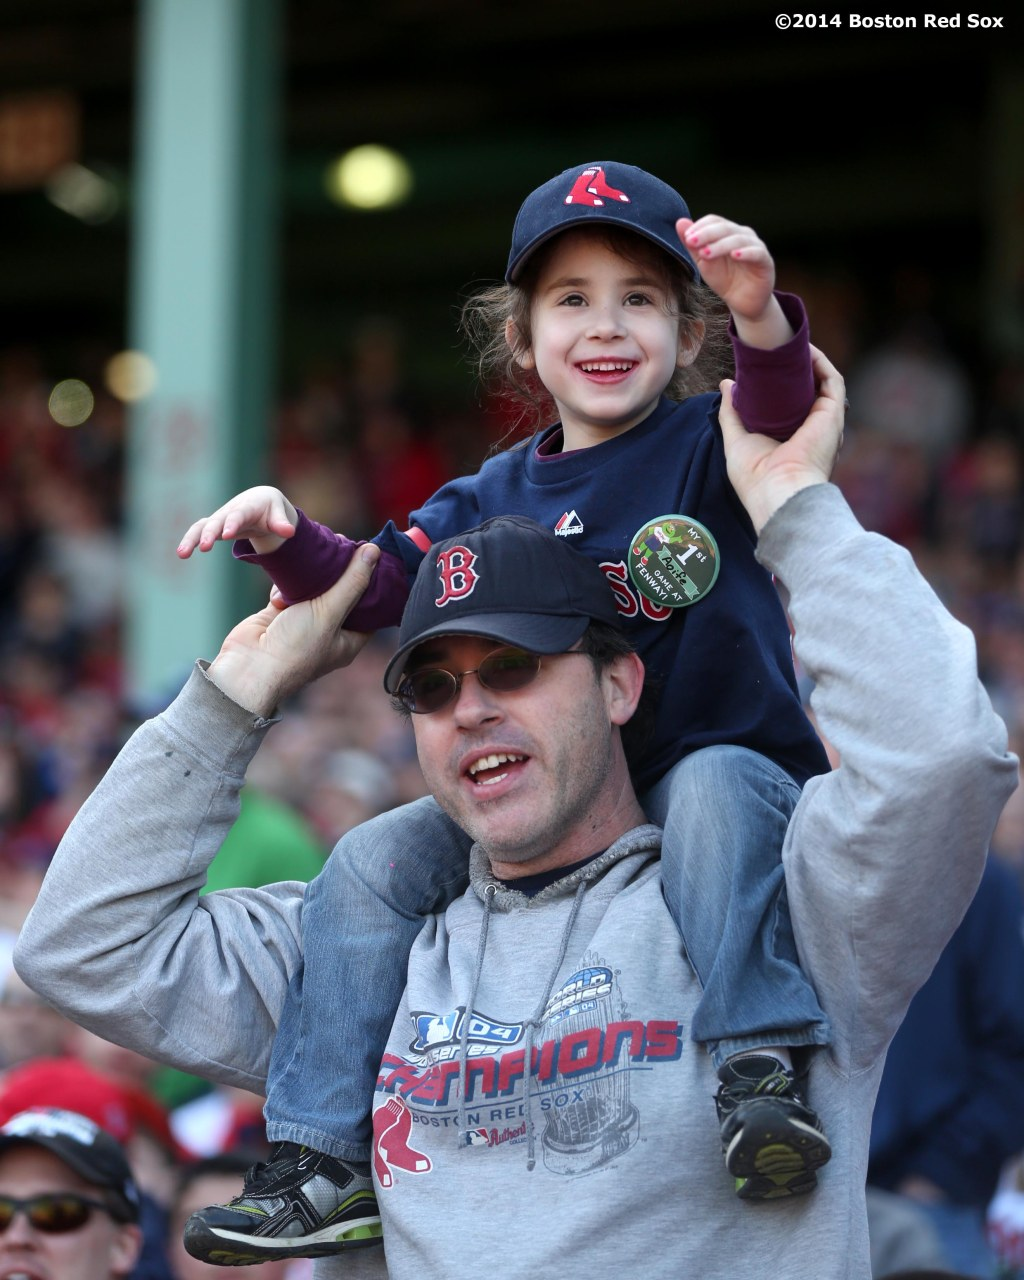 """A father holds his daughter up as they cheer during a game between the Boston Red Sox and the Baltimore Orioles Saturday, April 19, 2014 at Fenway Park in Boston, Massachusetts."""